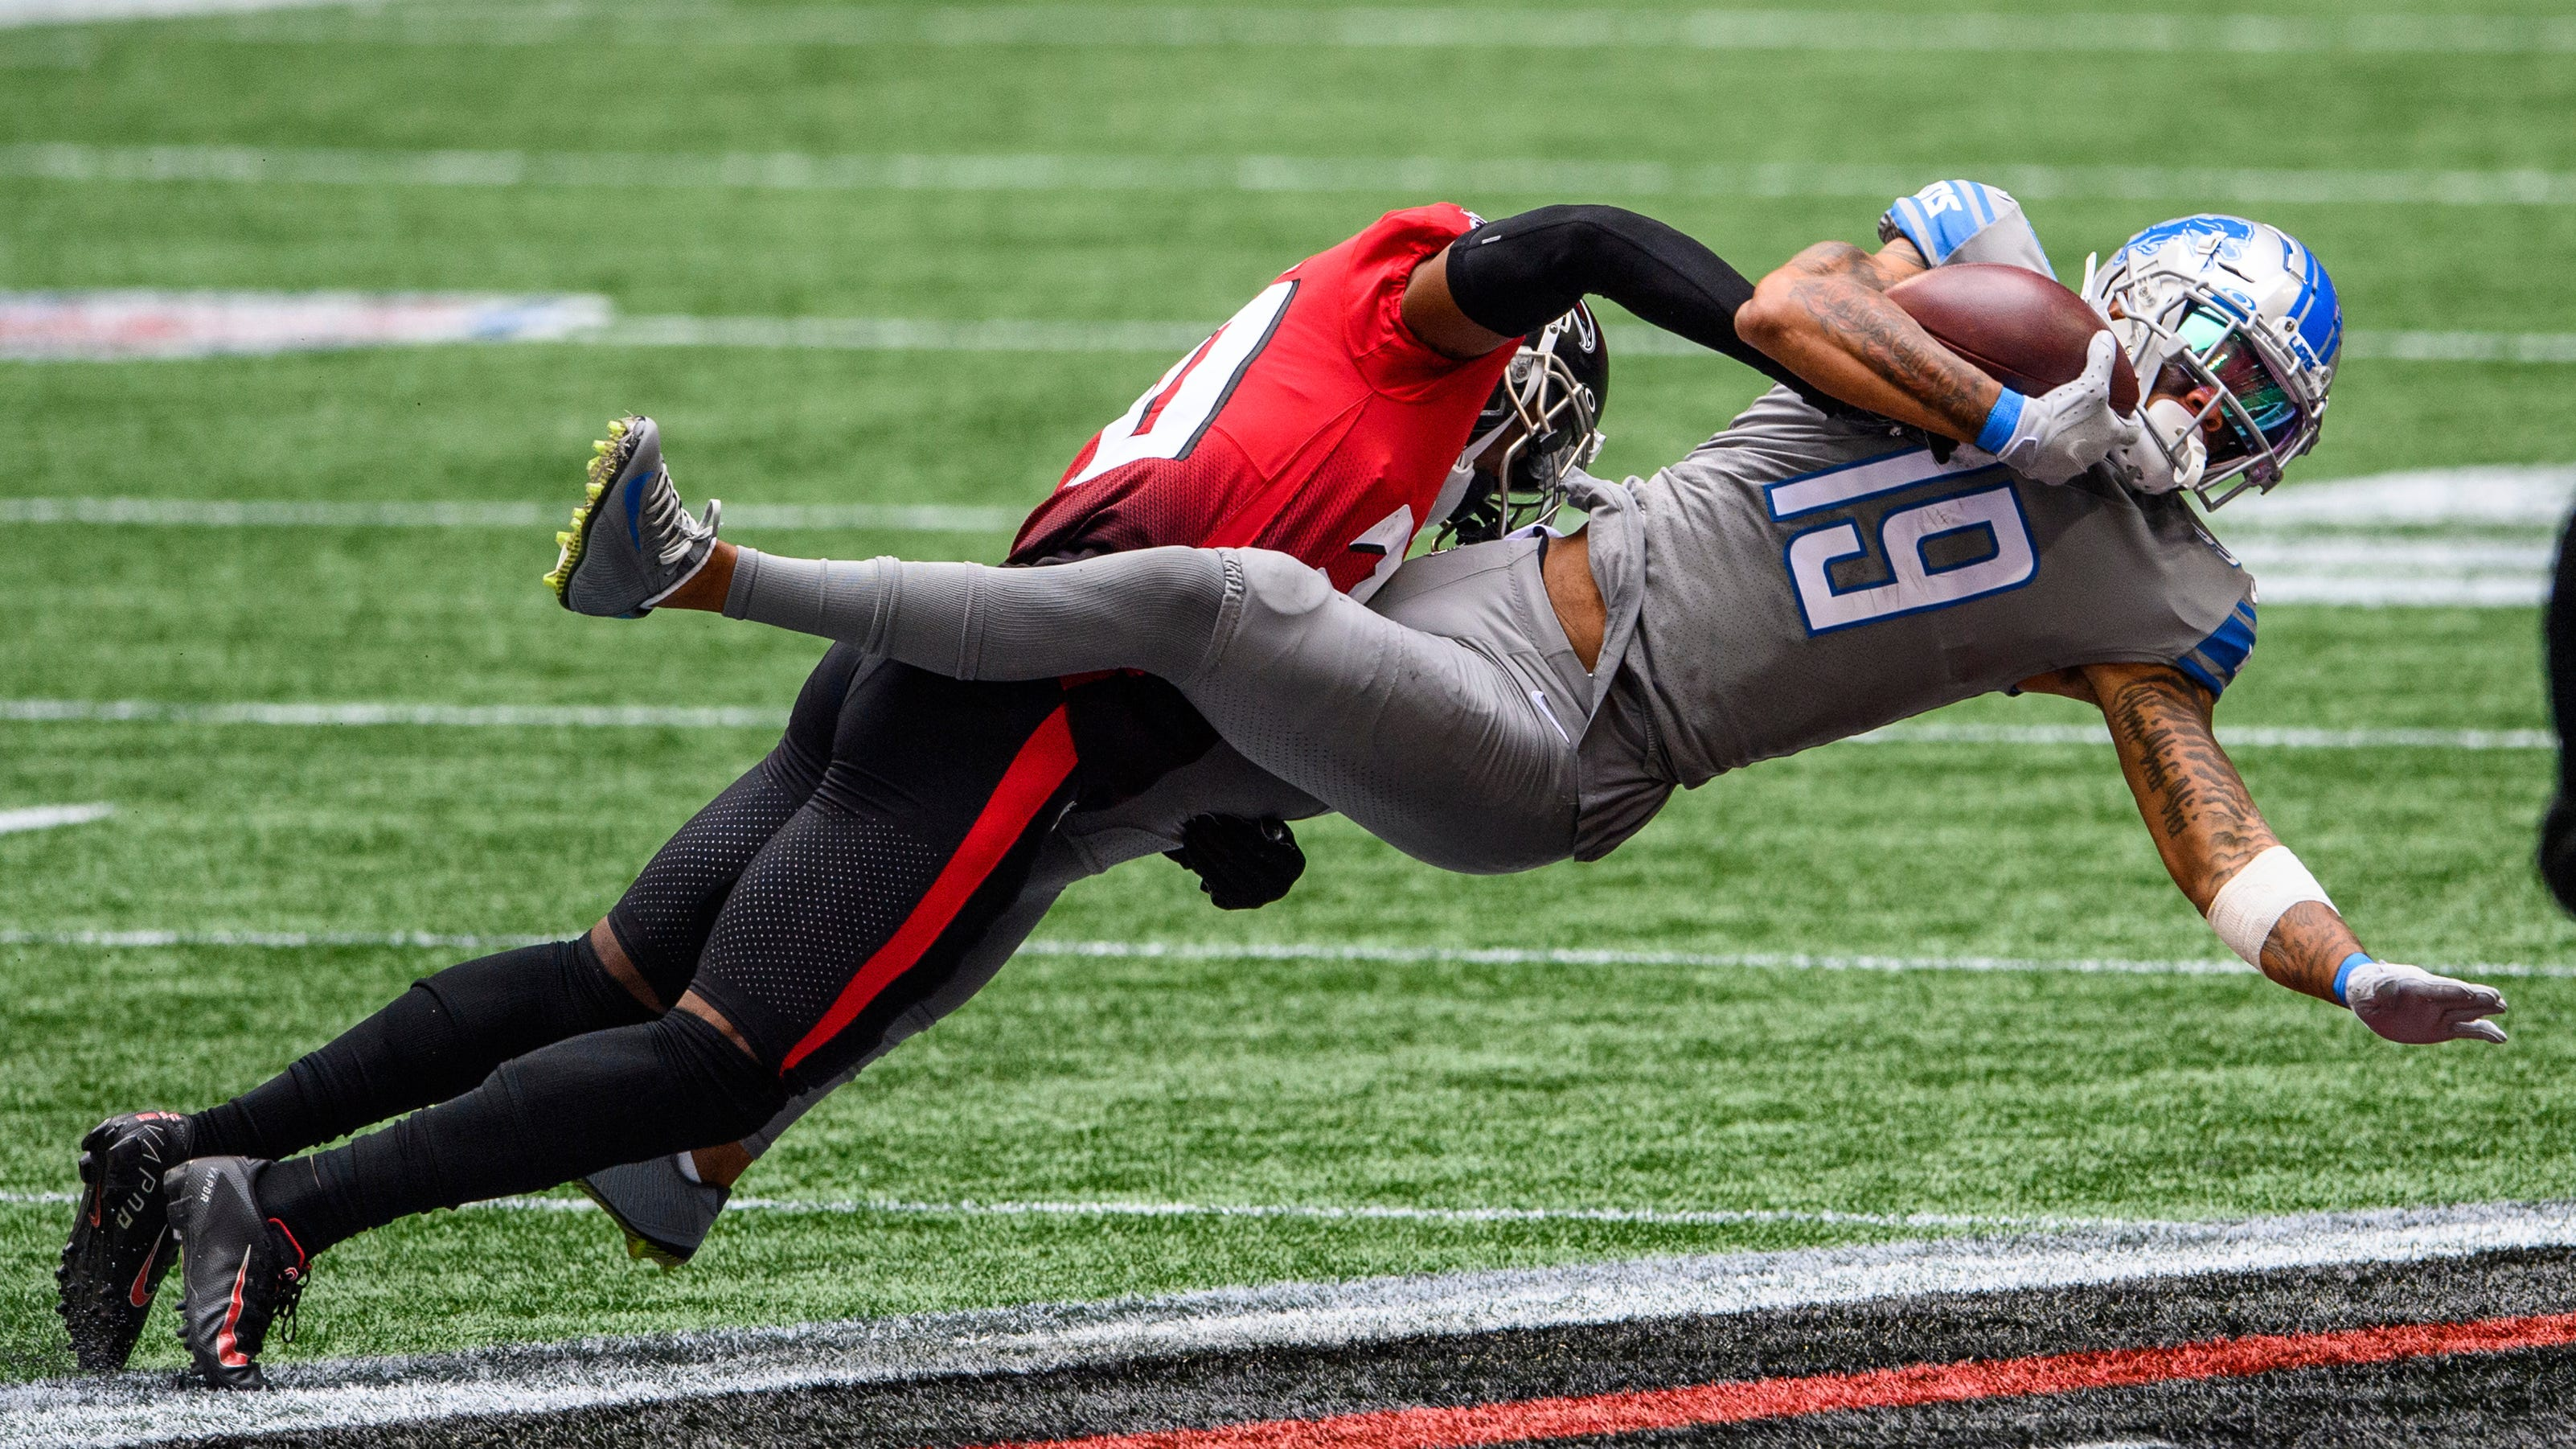 Detroit Lions wide receiver Kenny Golladay is tackled by Atlanta Falcons defensive back Kendall Sheffield.